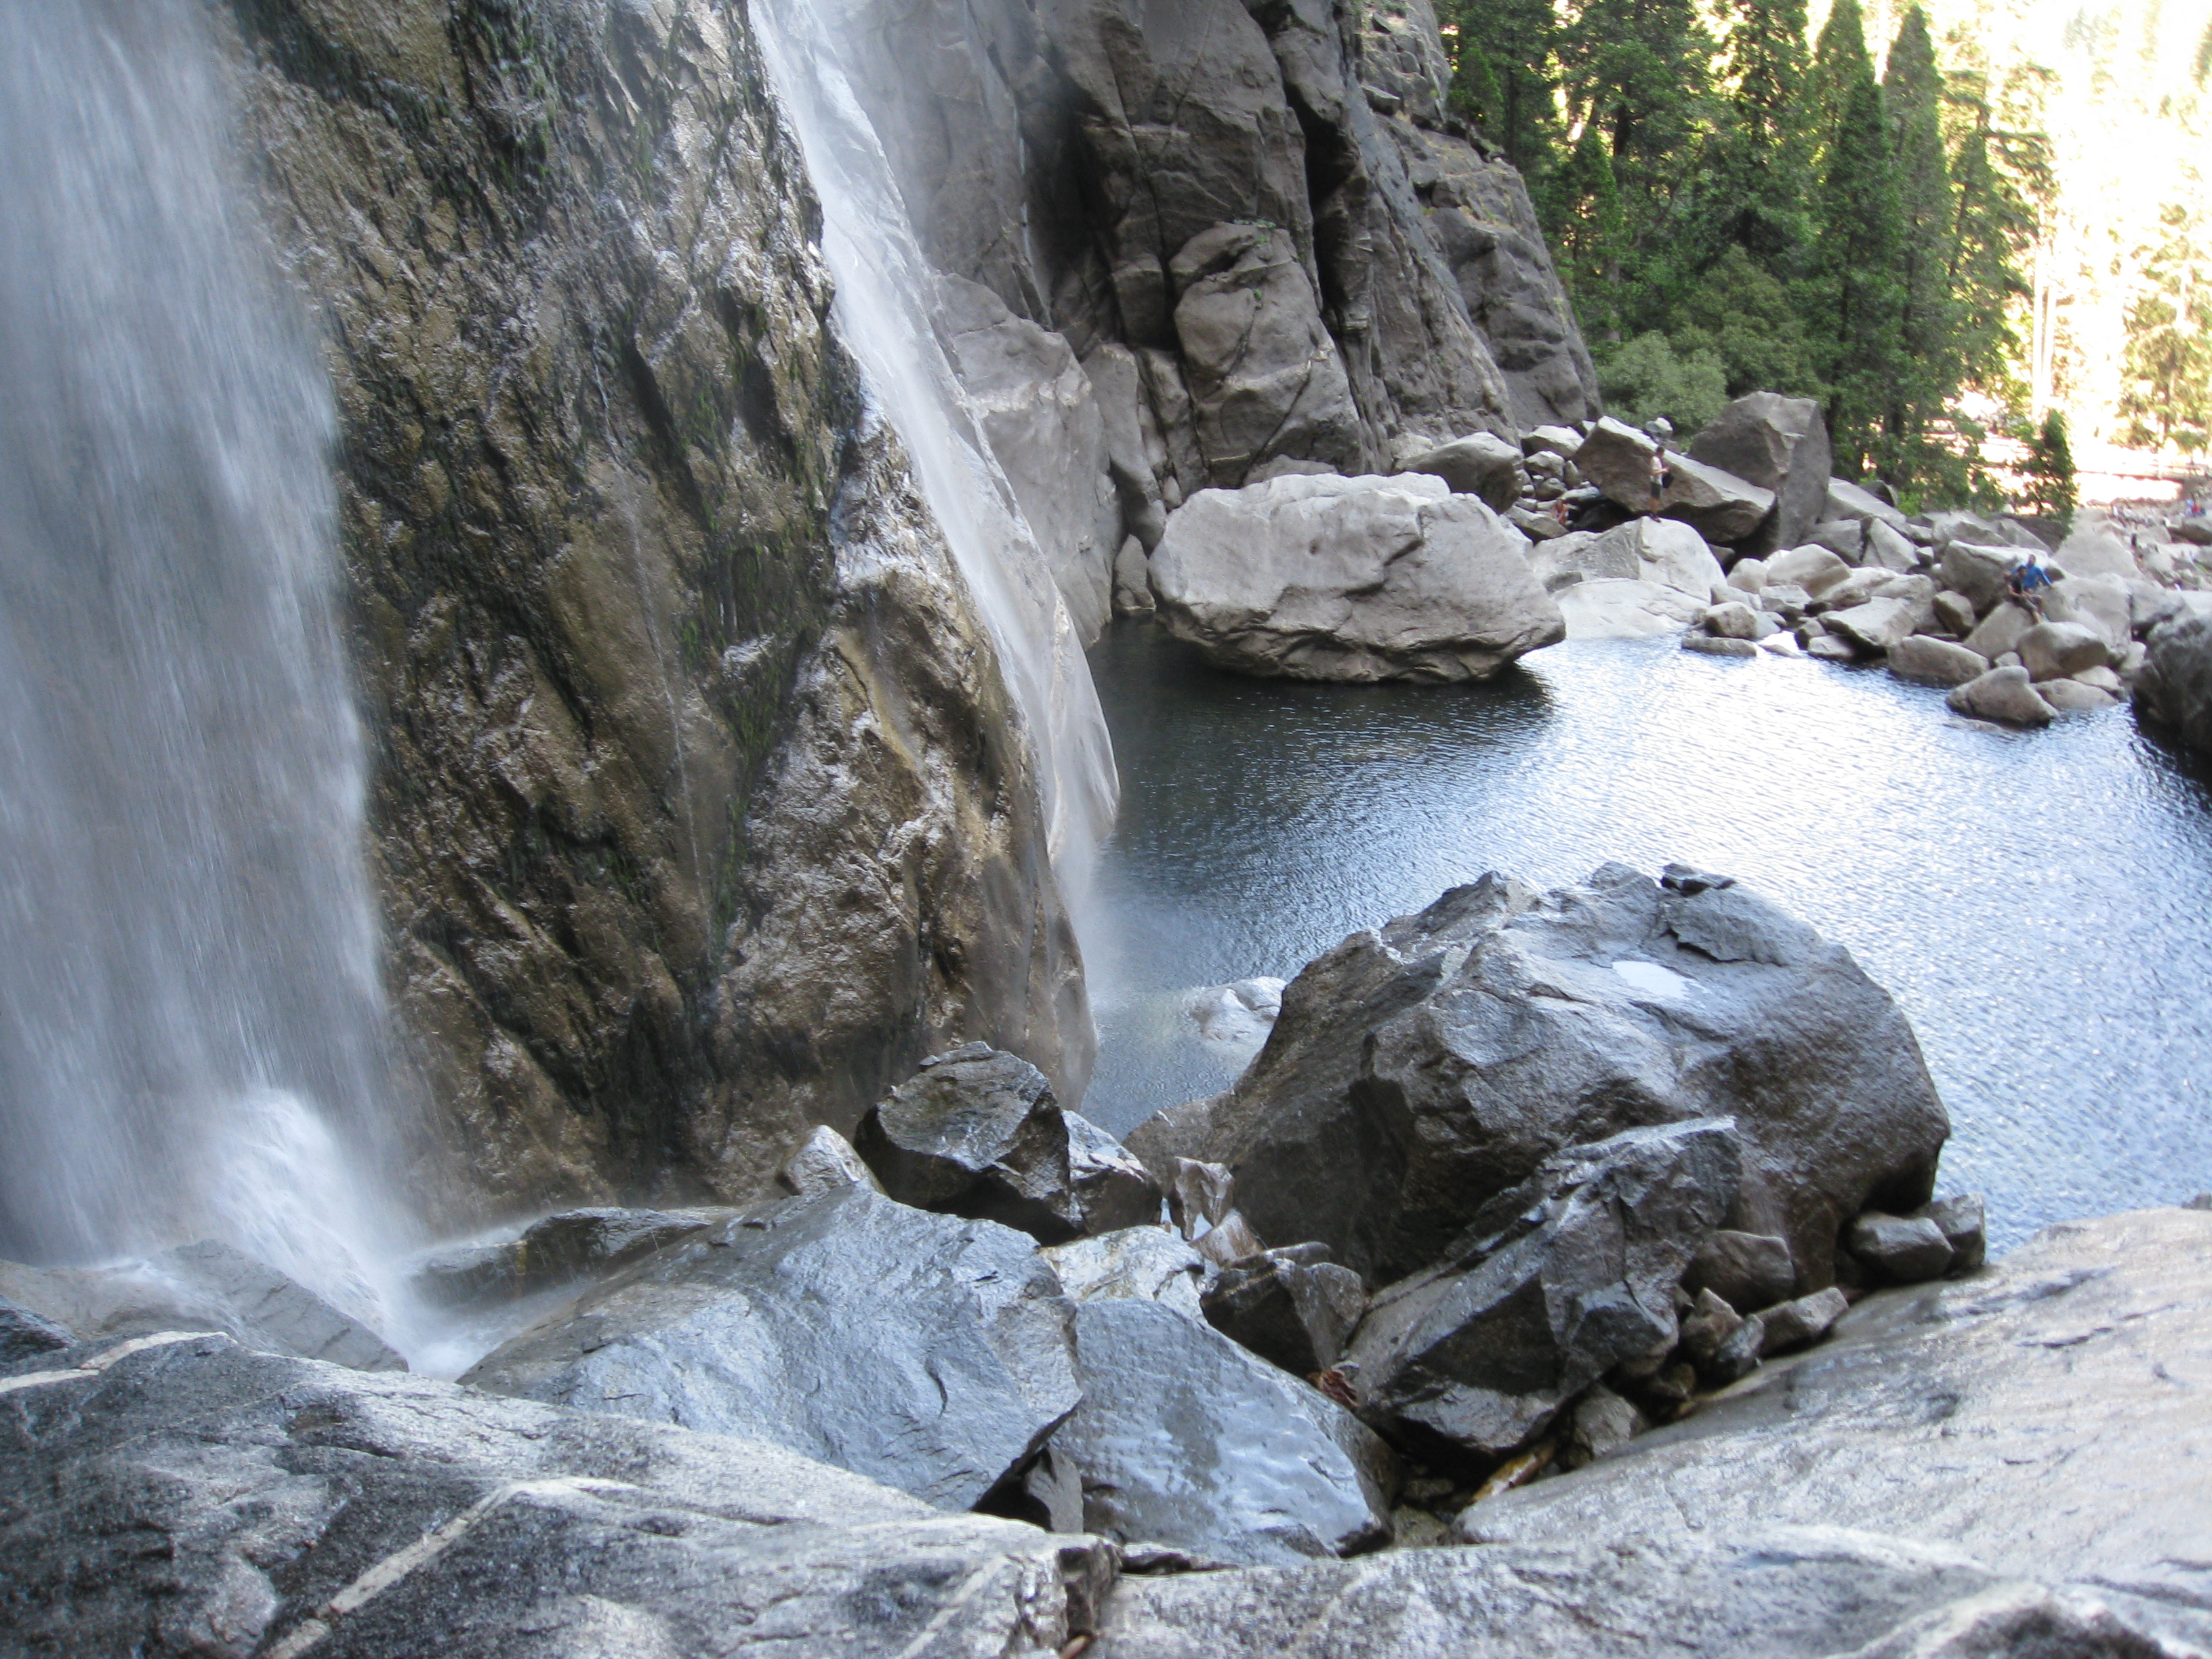 Lower Yosemite Falls' beauty is overwhelming